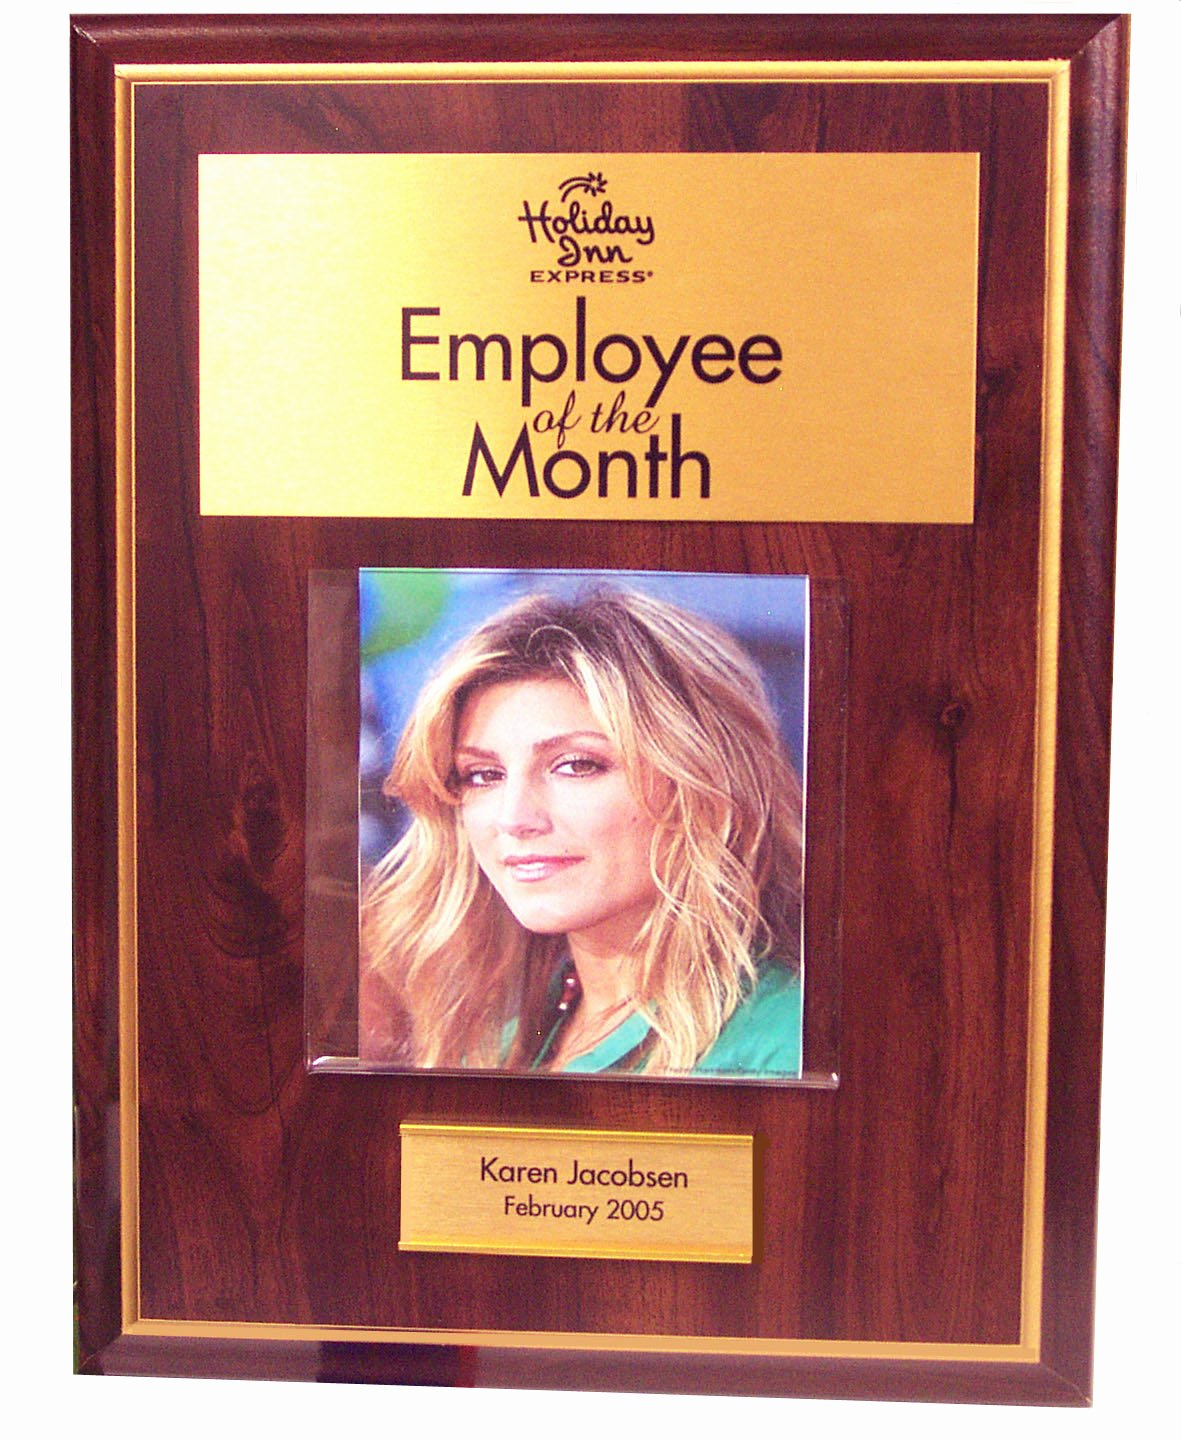 Employee Of the Month Frame New Employee Of the Month Plaque 9x12 with 12 Name Plates